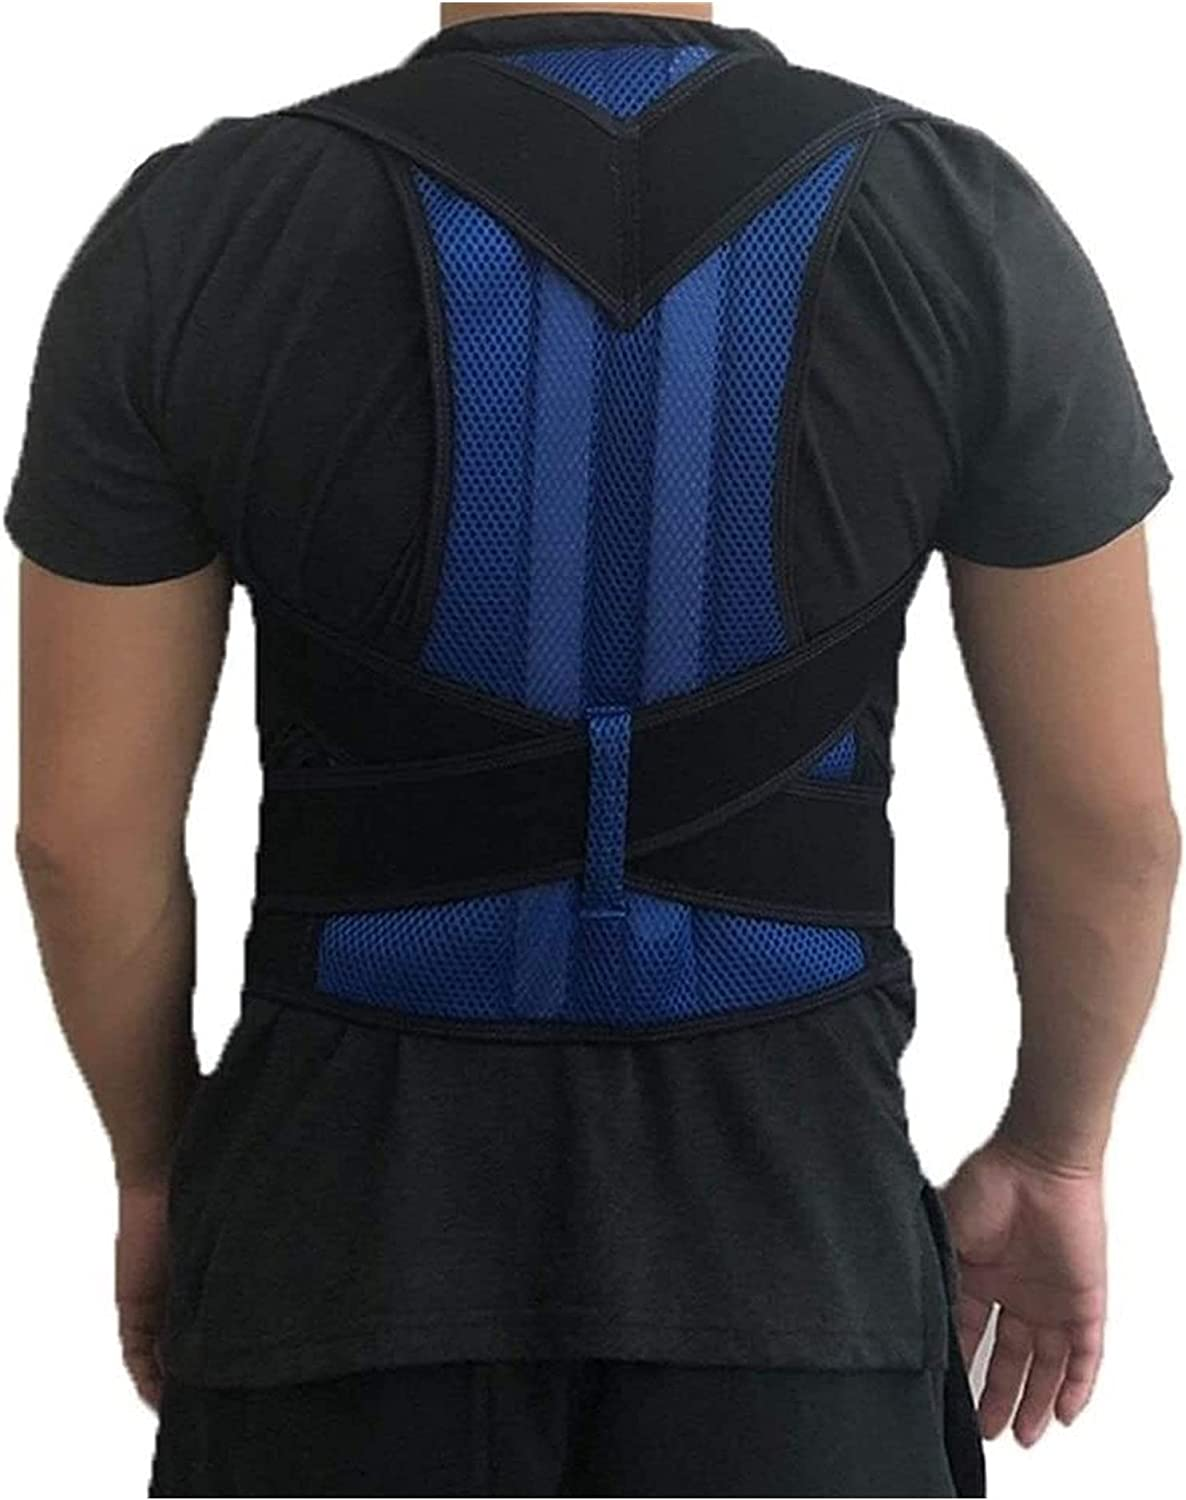 Posture Correction Special price Belt Tampa Mall for Men and Back Support Women Str Brace